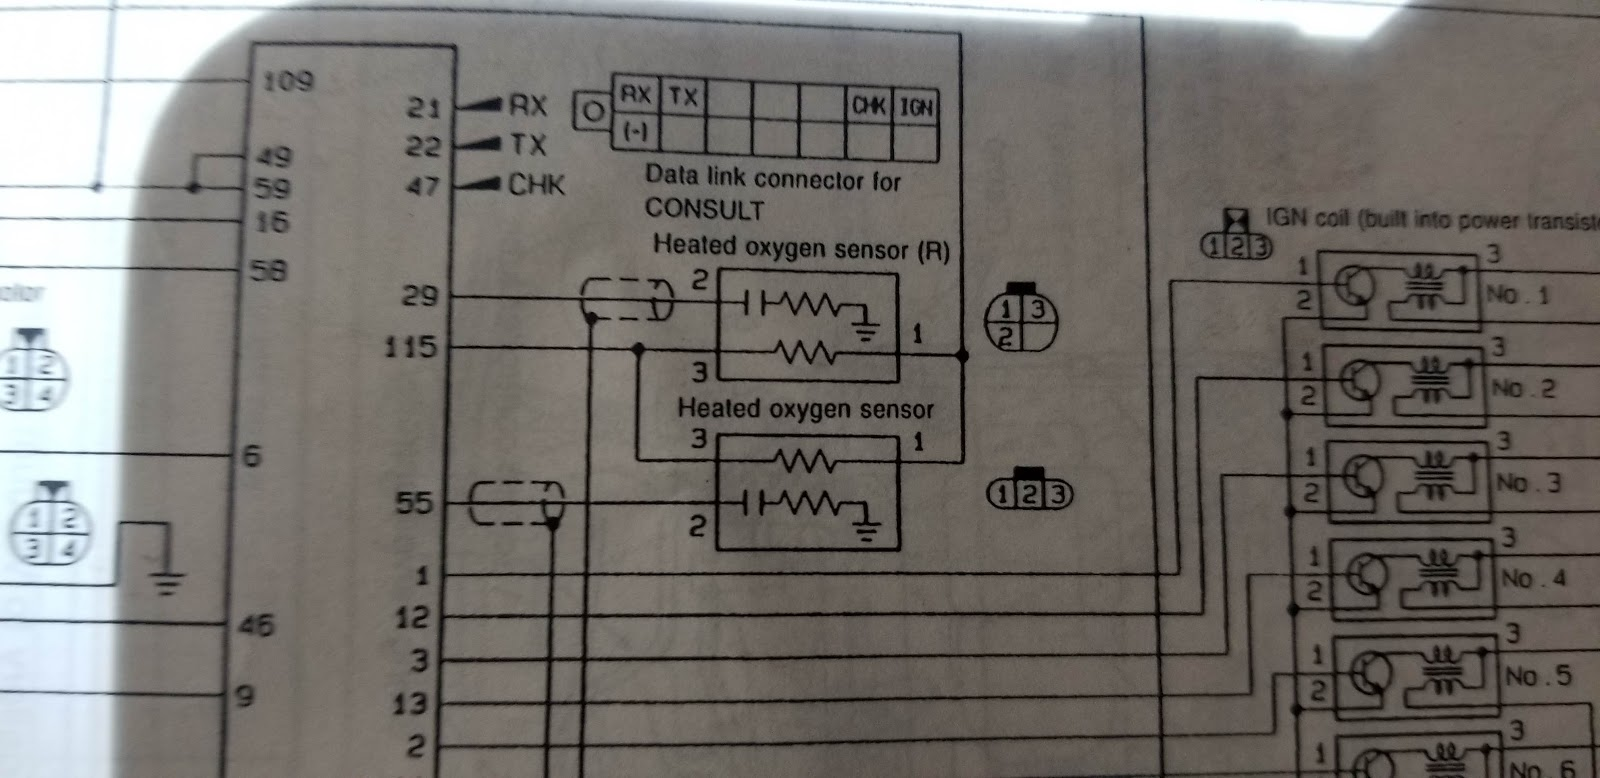 hight resolution of r33 r34 oxygen sensor wiring with pin out the flat plug wiring is the same the square plug wiring is not